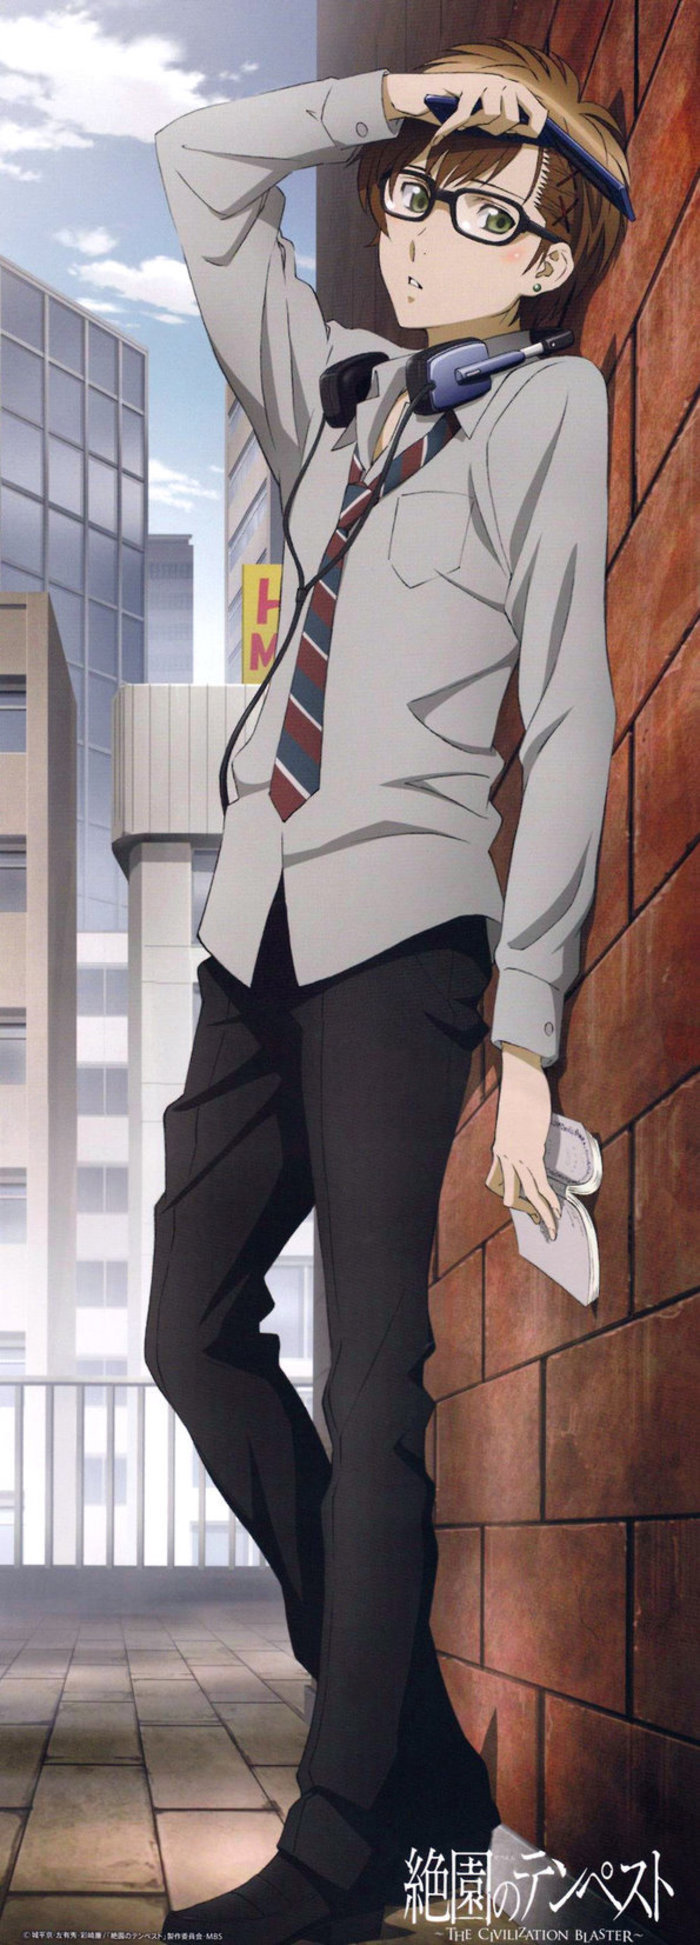 cute uke with glasses standing by the wall wearing school uniform holding a book big headphones on his neck boys school uniform in Japan Zetsuen no Tempest Yoshino Takigawa - Poems of you zetsuen-no-tempest-yaoi Yoshino Takigawa Uke Piercing Glasses Formal wear - fanarts on yaoi-online.com